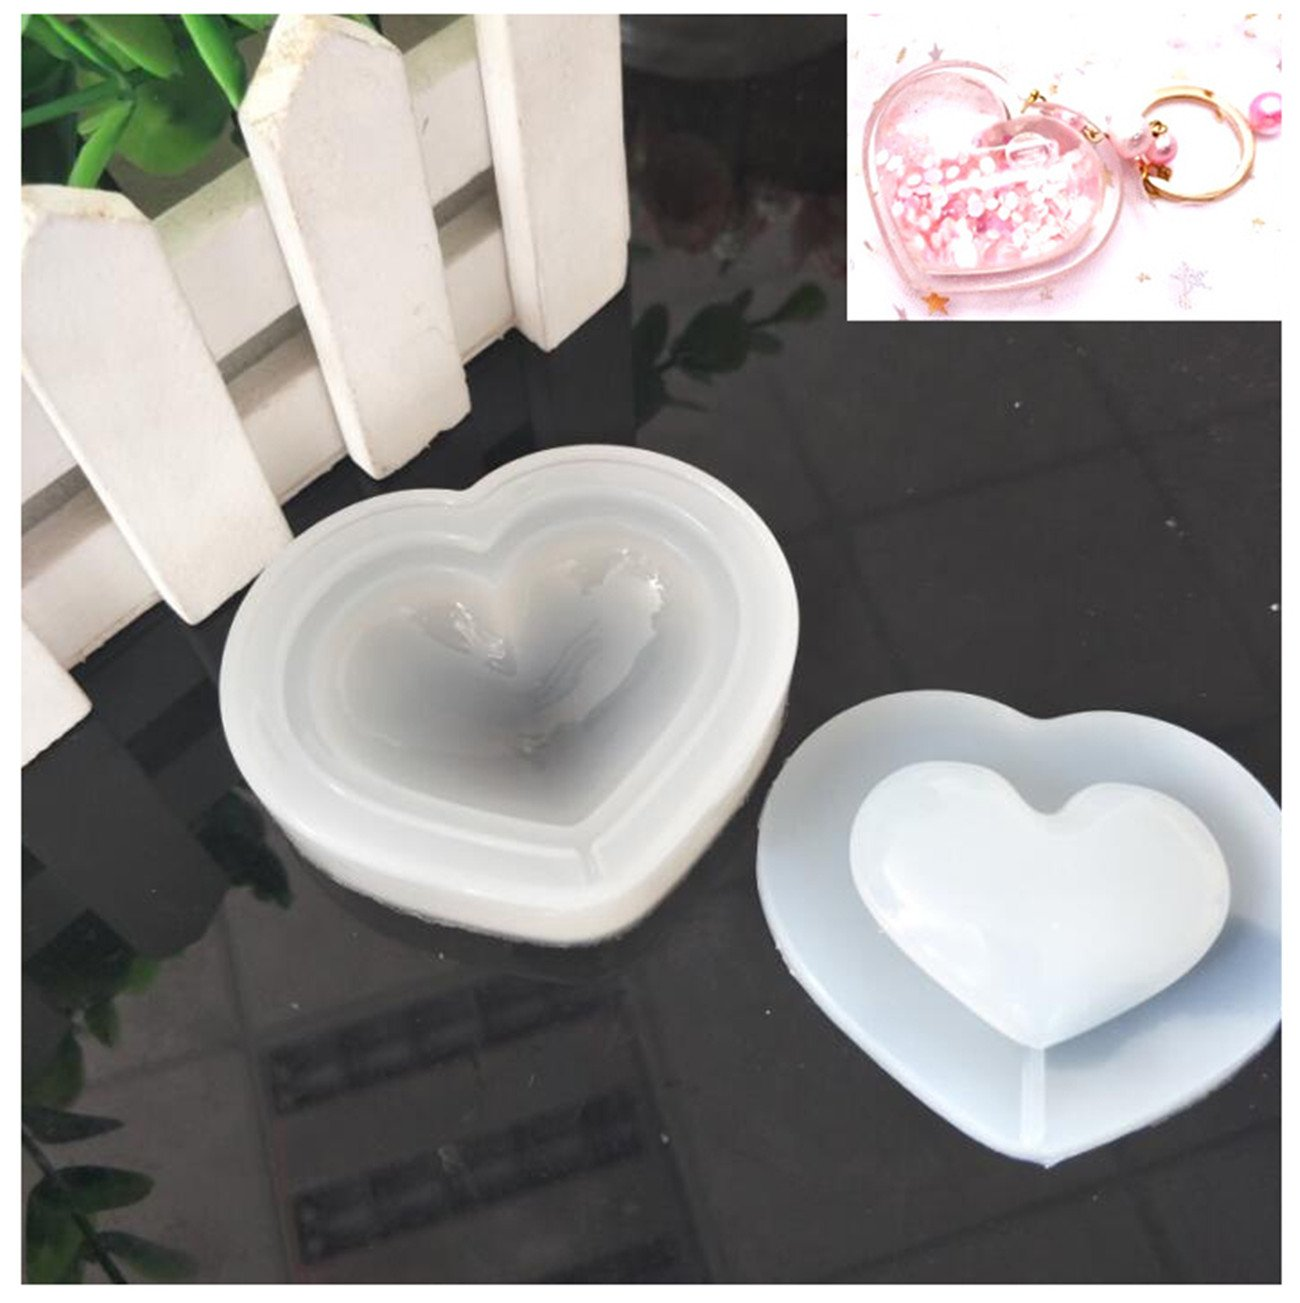 Heart DIY Jewels Mold Beading Casting Mould DIY Handmade Silicone Mould Clear Mould For Resin Crystal Lovely Gift UKPJDY-GJ-AX